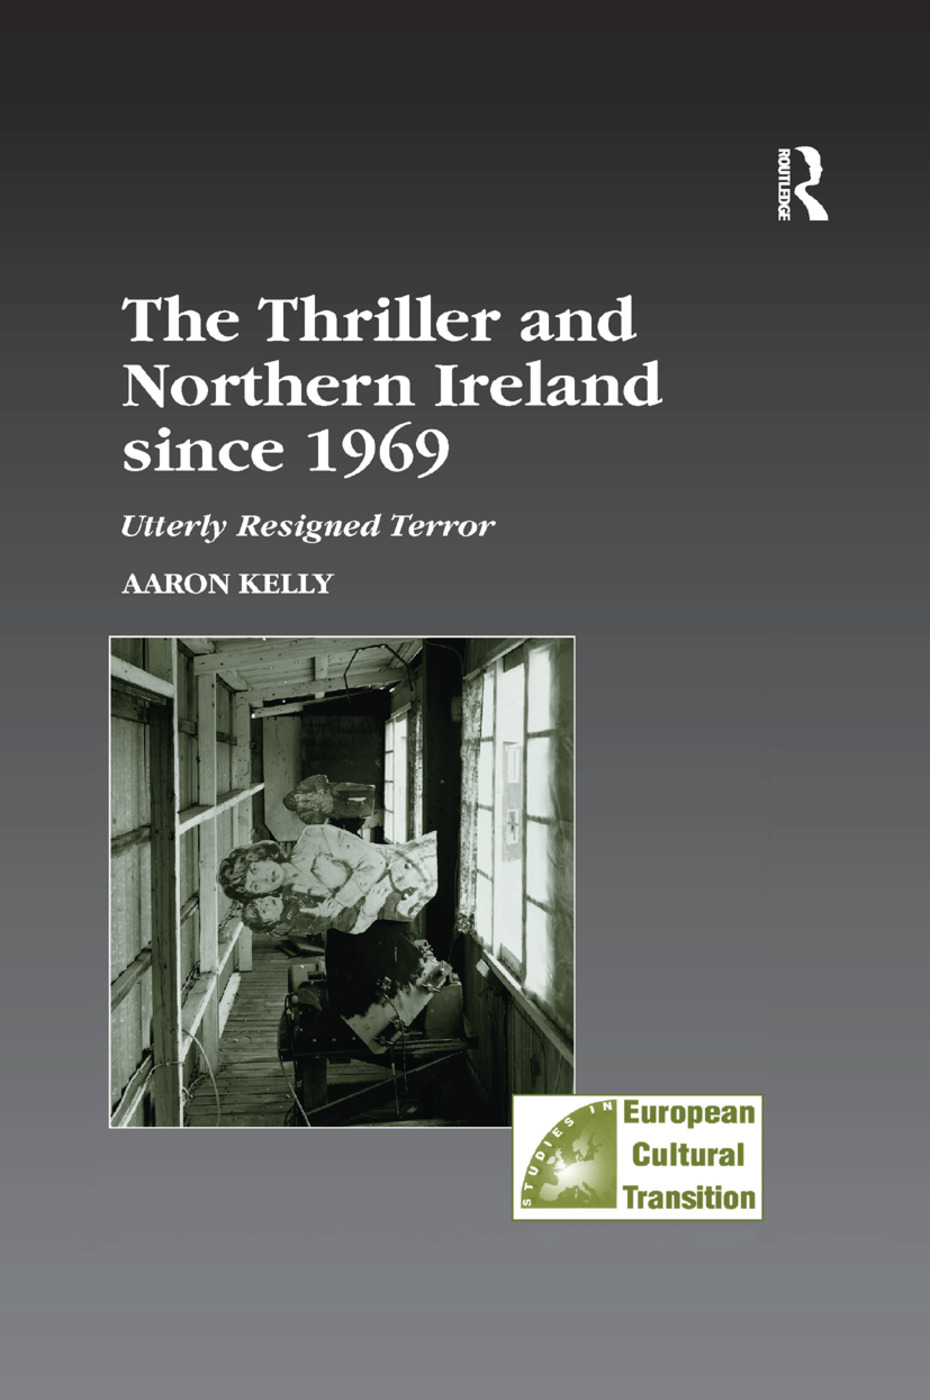 The Thriller and Northern Ireland since 1969: Utterly Resigned Terror book cover